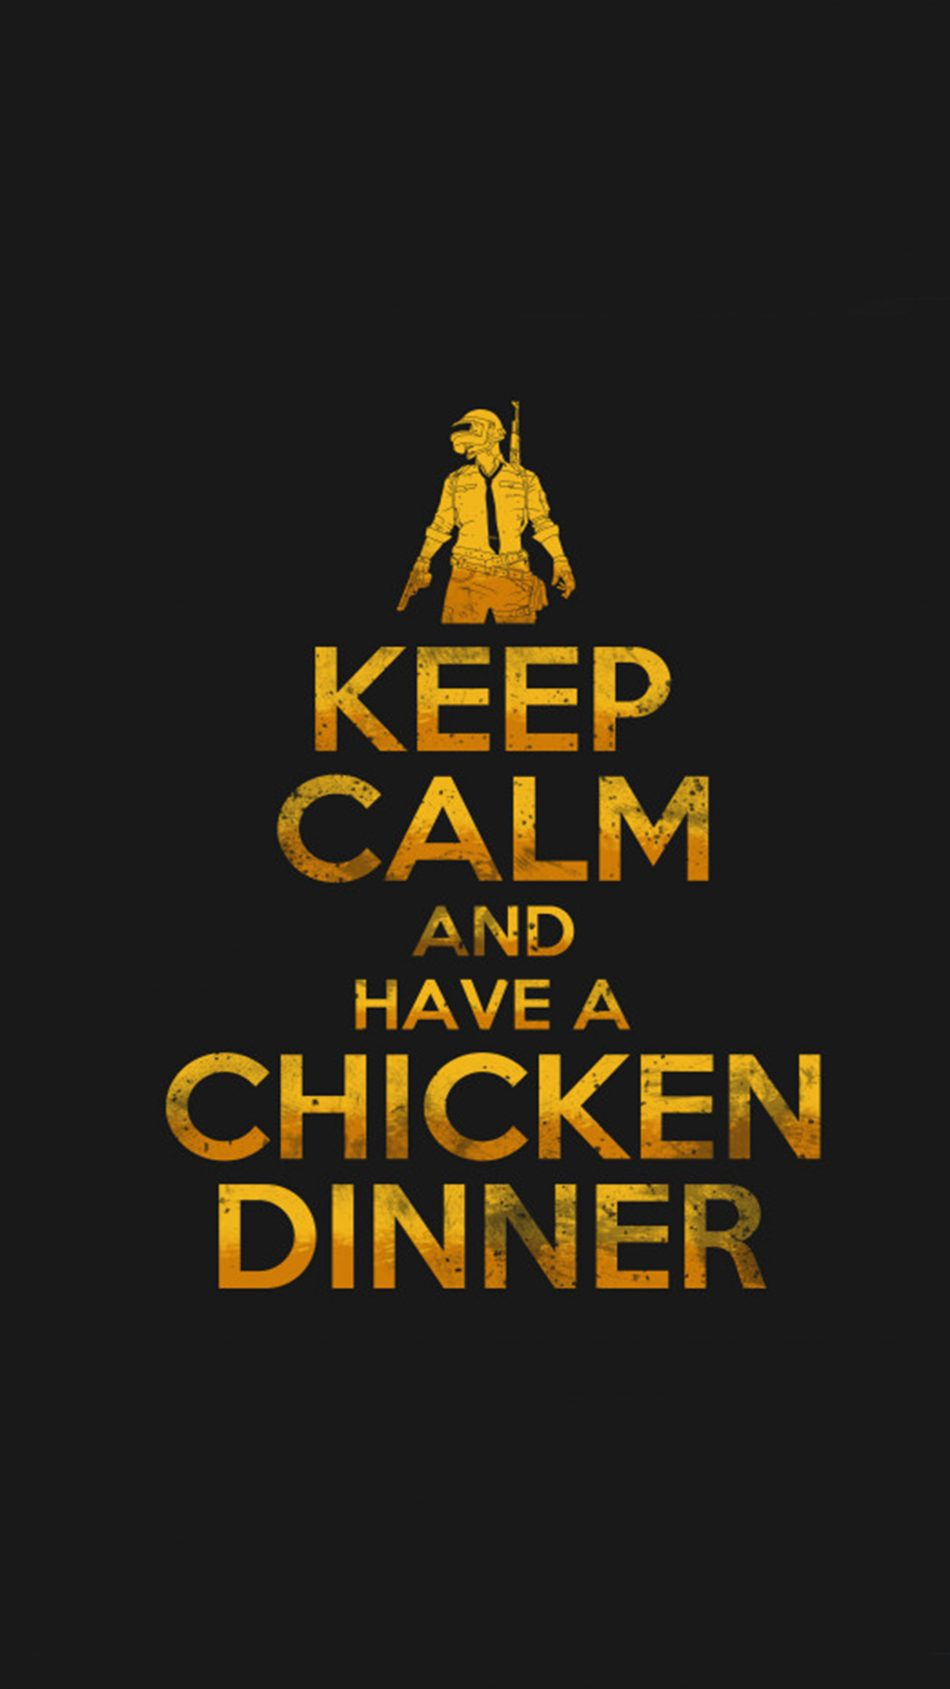 PUBG Keep Calm And Have A Chicken Dinner 4K Ultra HD Mobile 950x1689